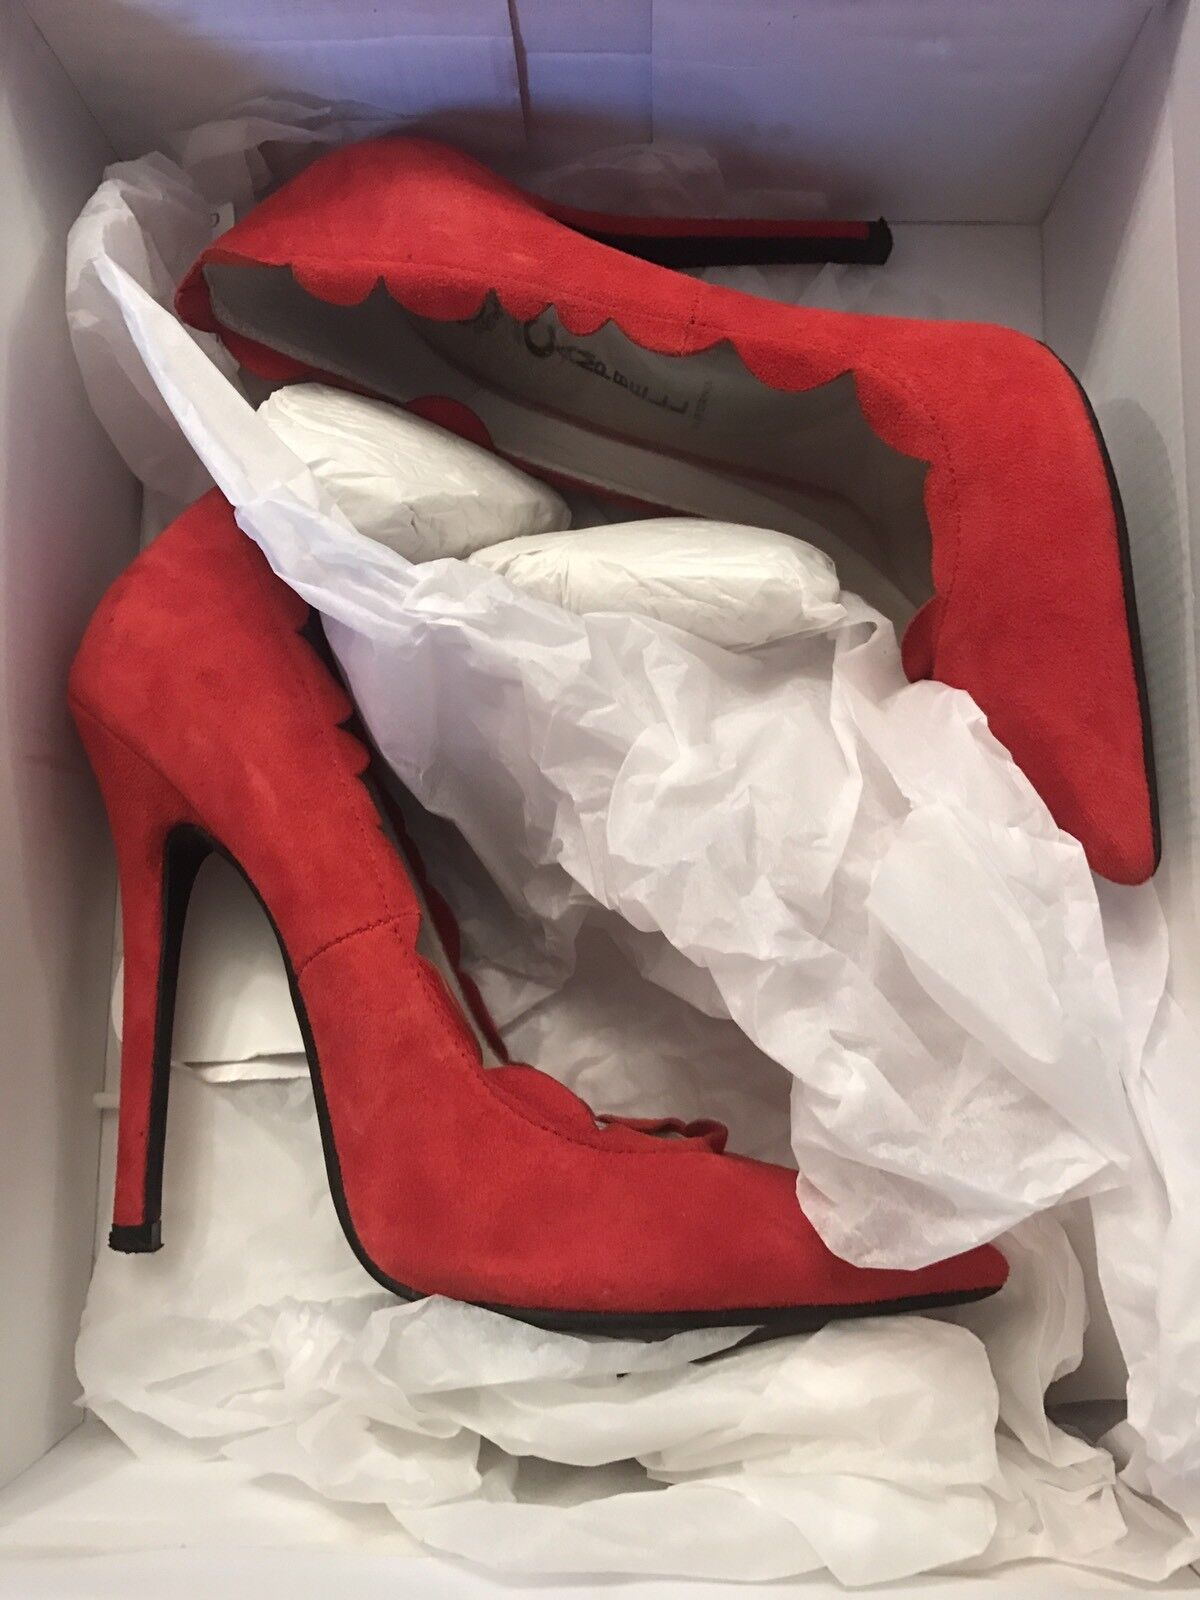 *SOLD OUT EVERYWHERE* Red Suede Jeffrey Campbell Scallopini Pump - Size 5.5